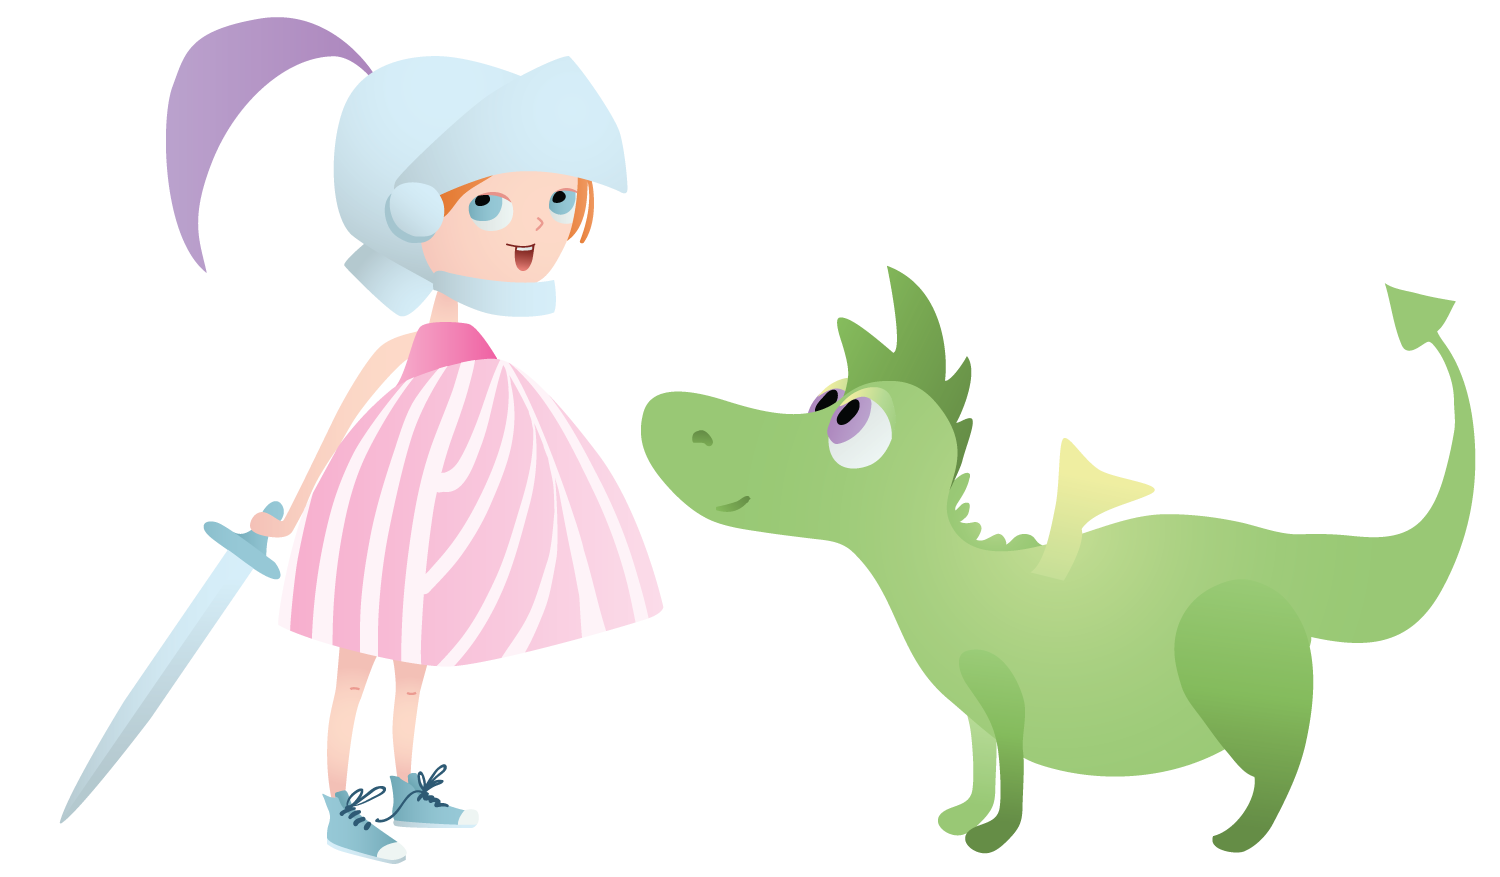 dollsanddragons-icon-footer.png